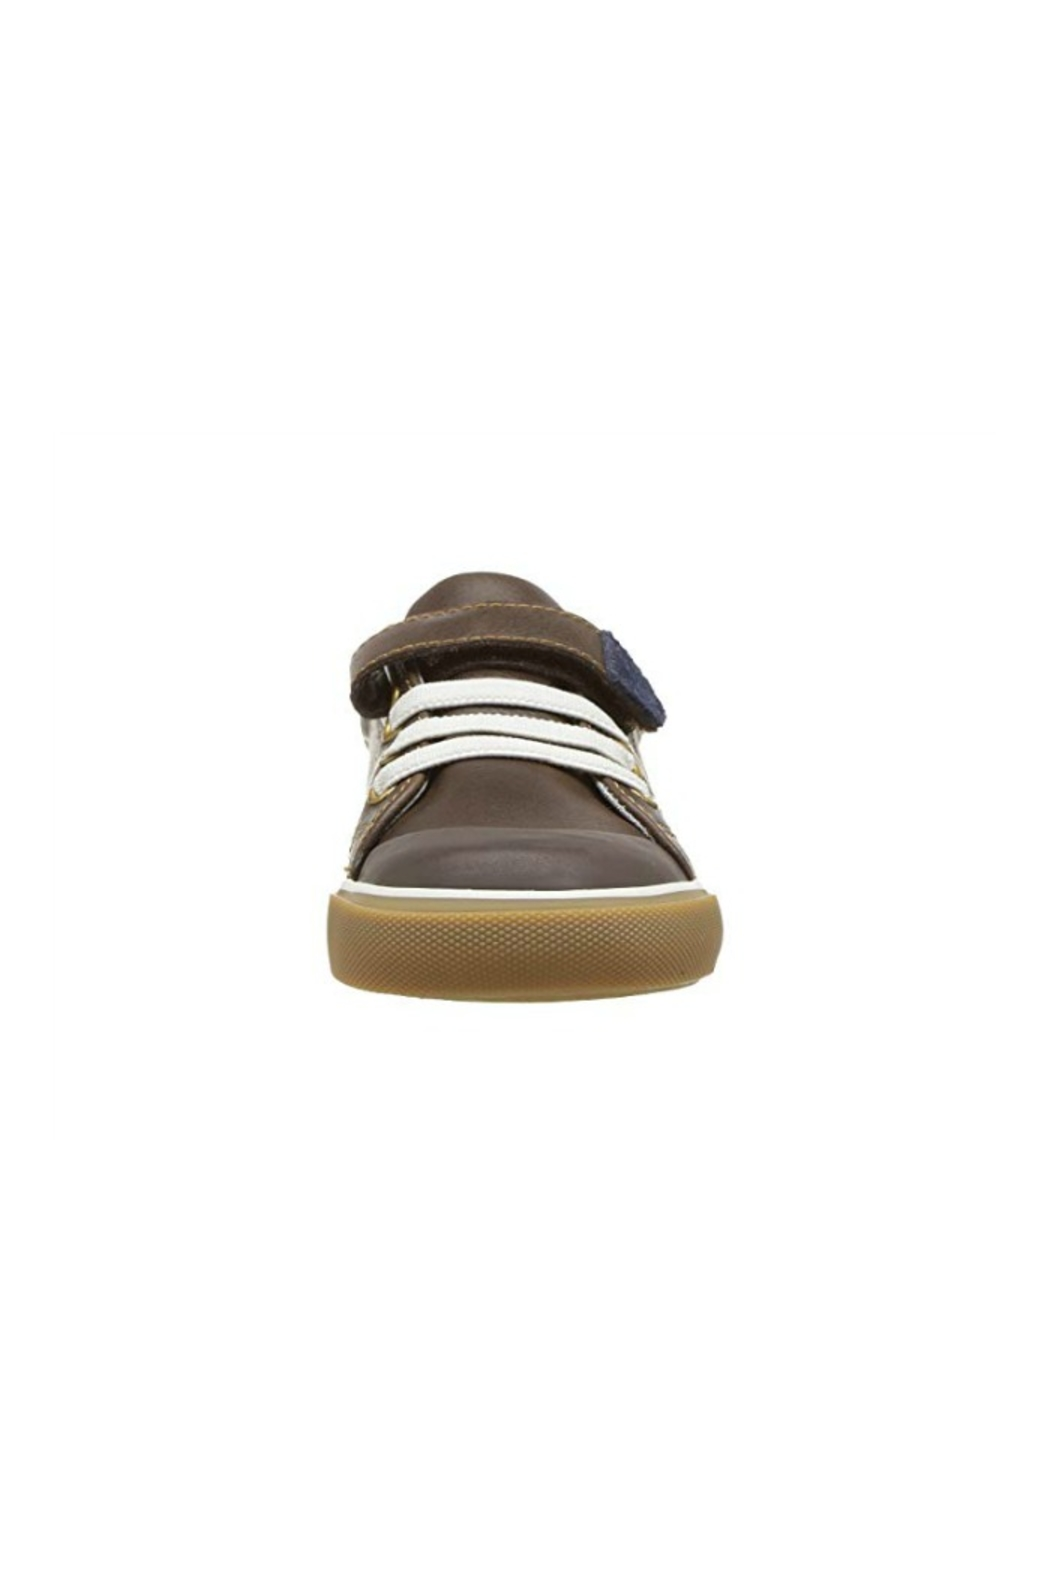 See Kai Run Stevie II in Brown Leather - Front Full Image